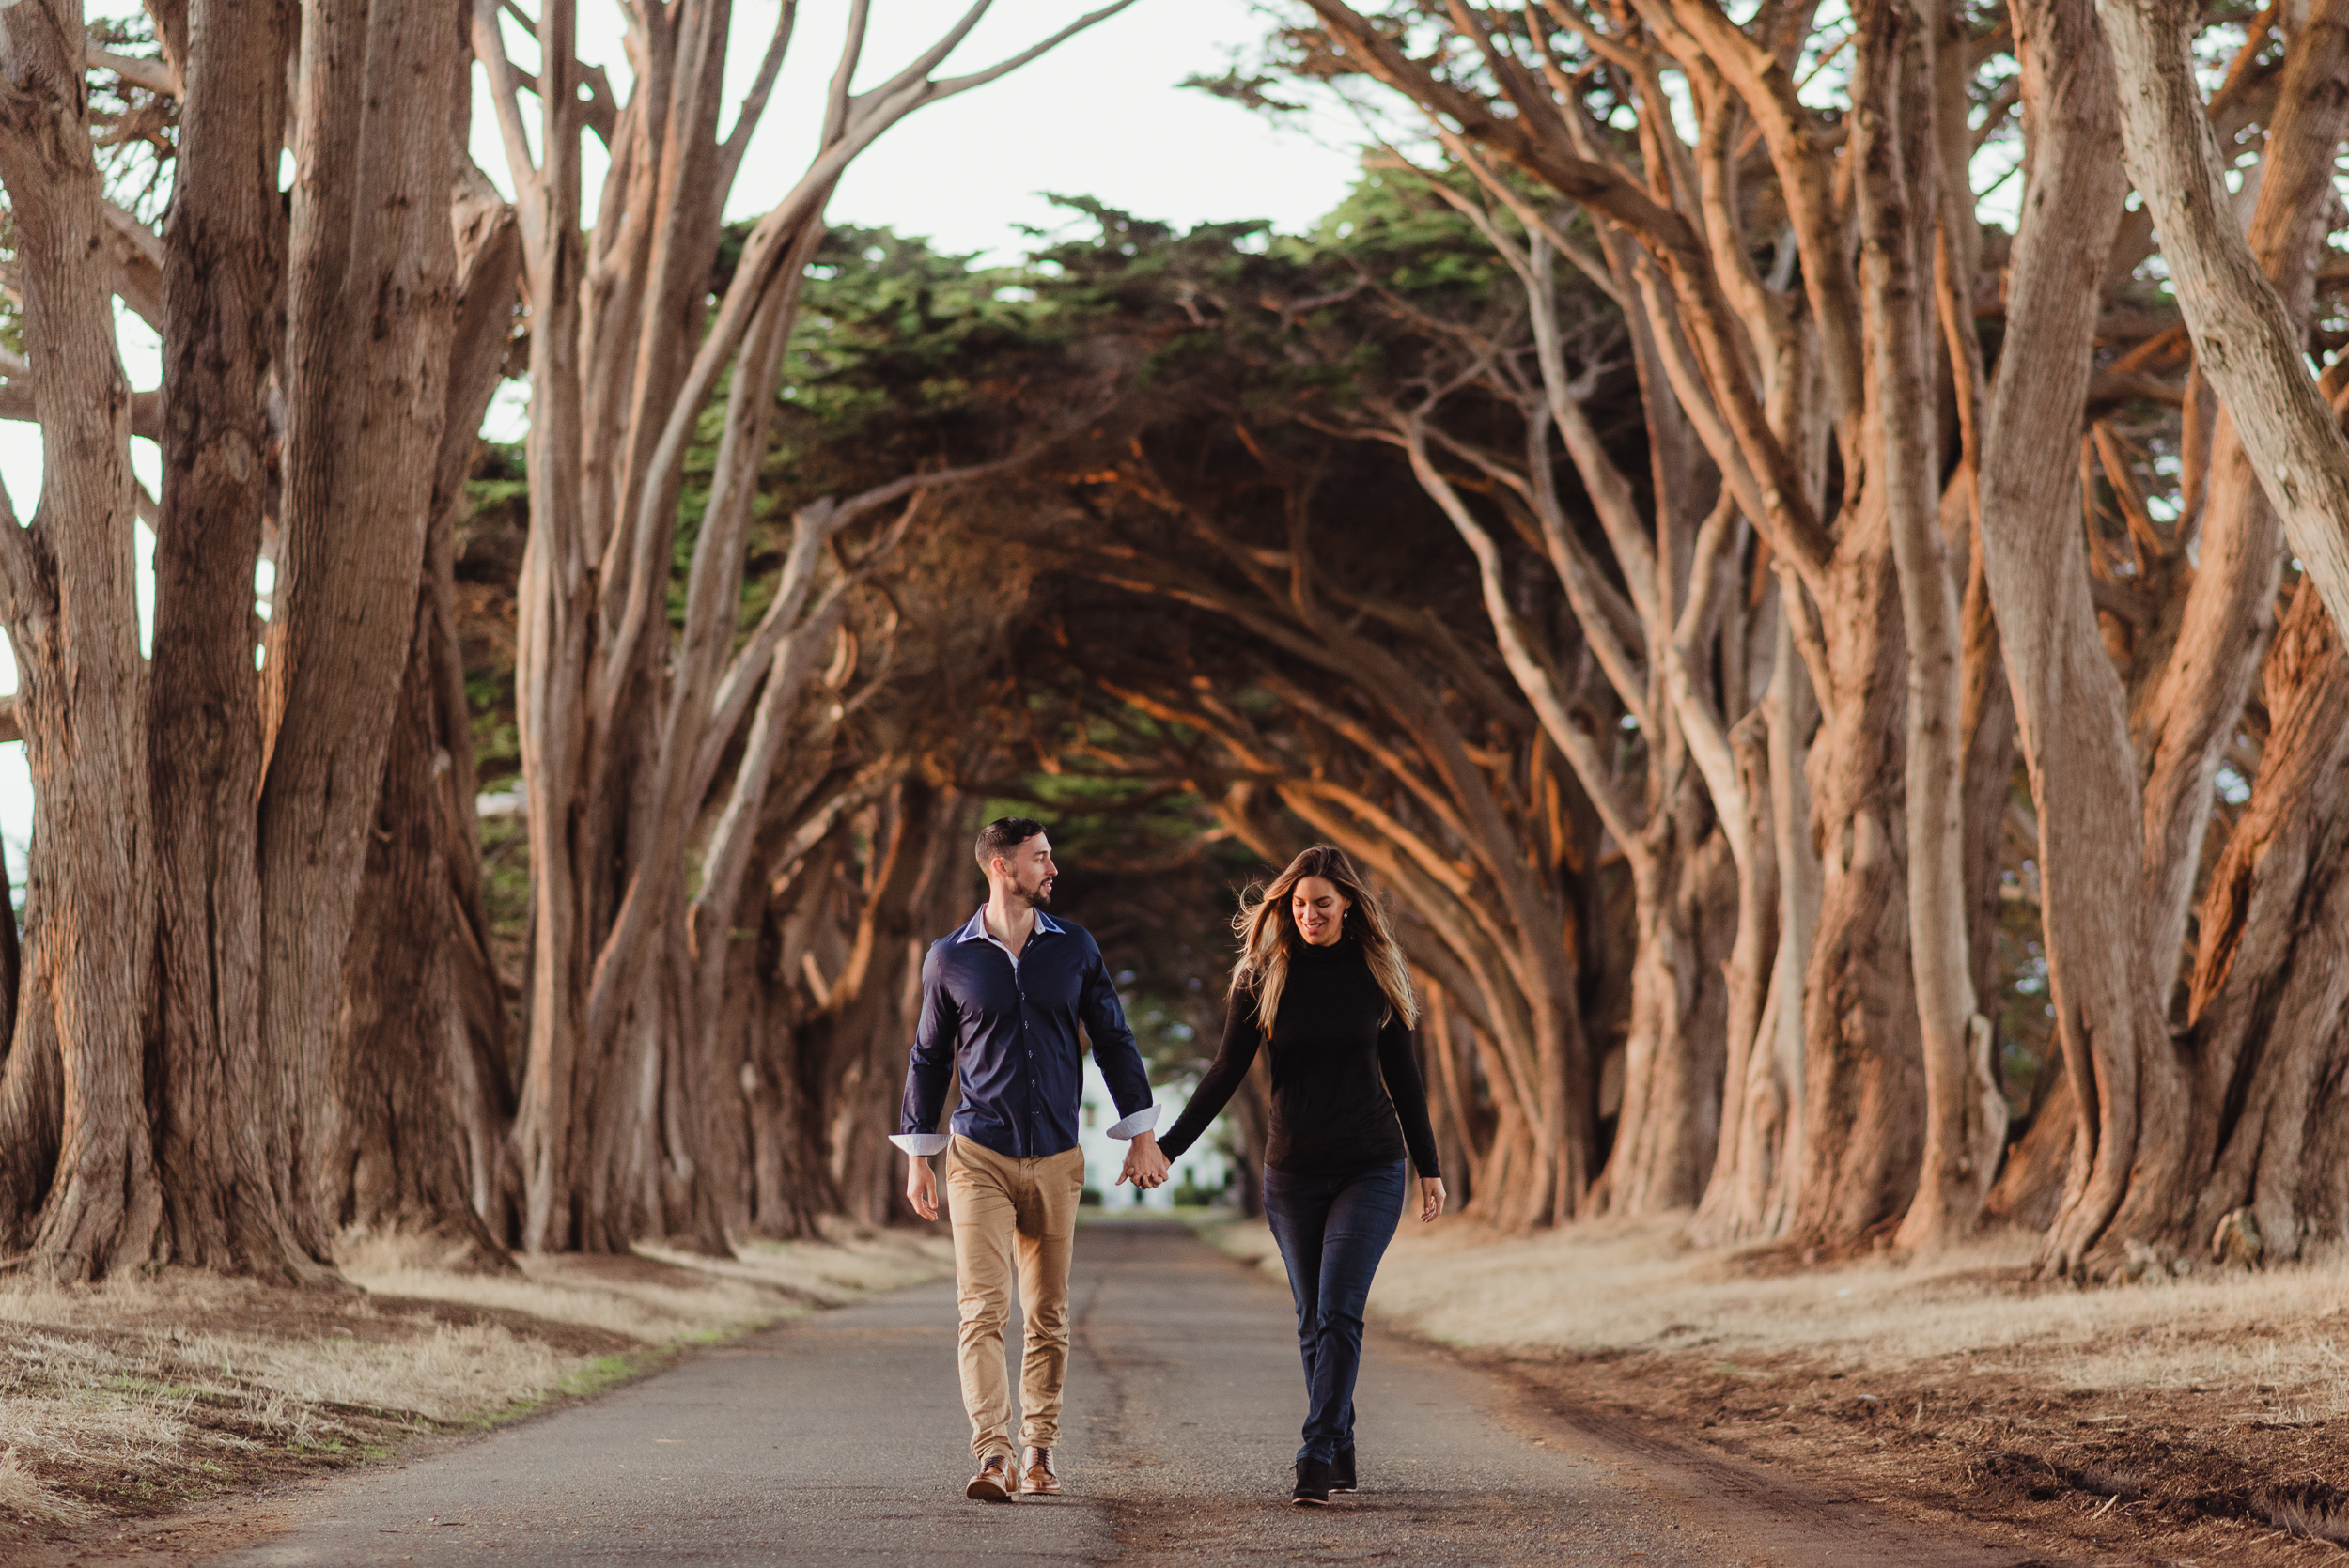 point-reyes-national-seashore-engagement-session-vivianchen-175.jpg